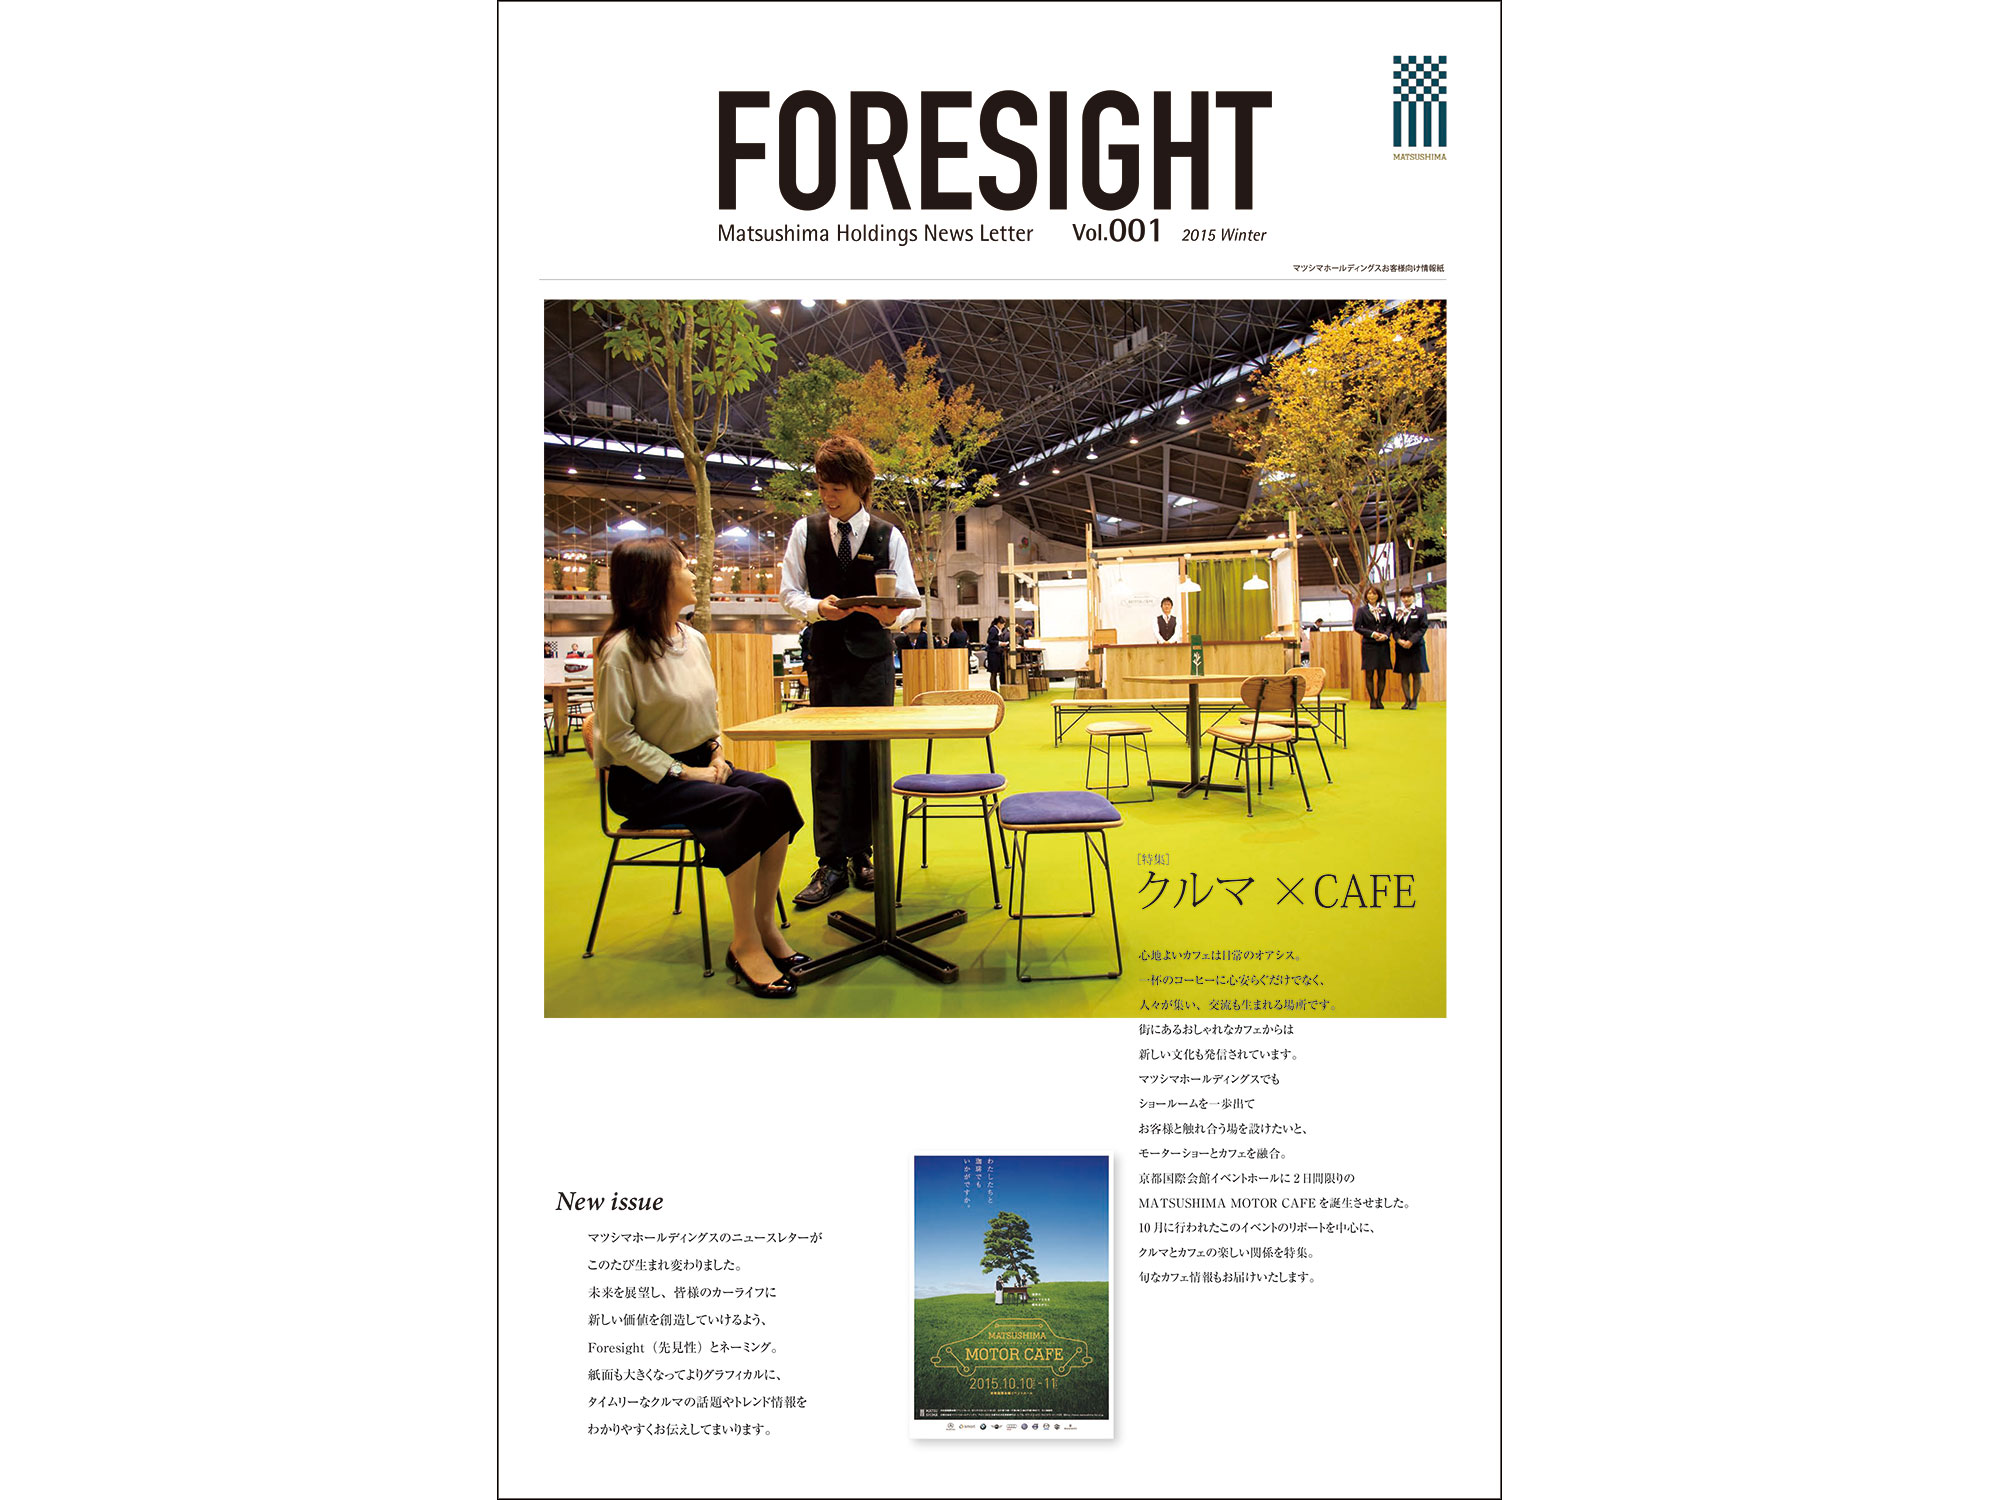 foresight01 2015winter表紙